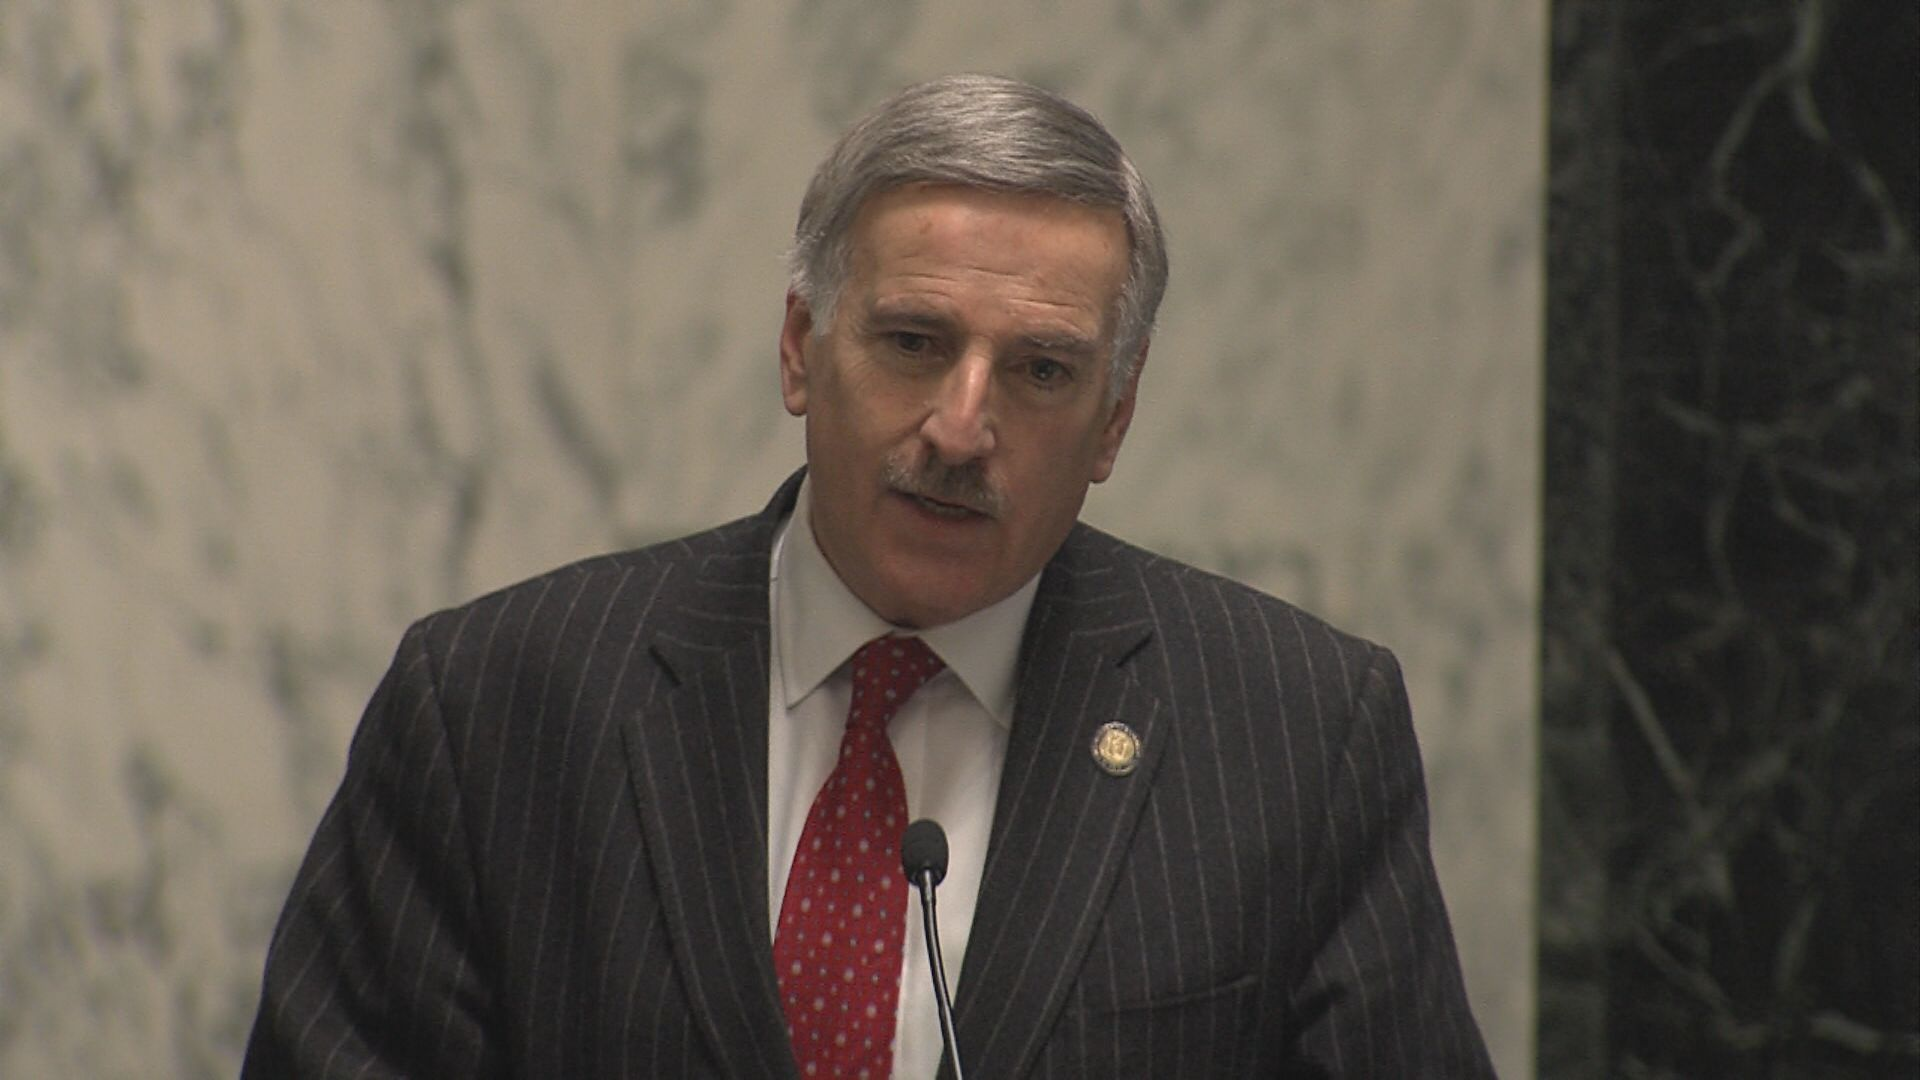 Weprin Celebrates Dyslexia Awareness Day